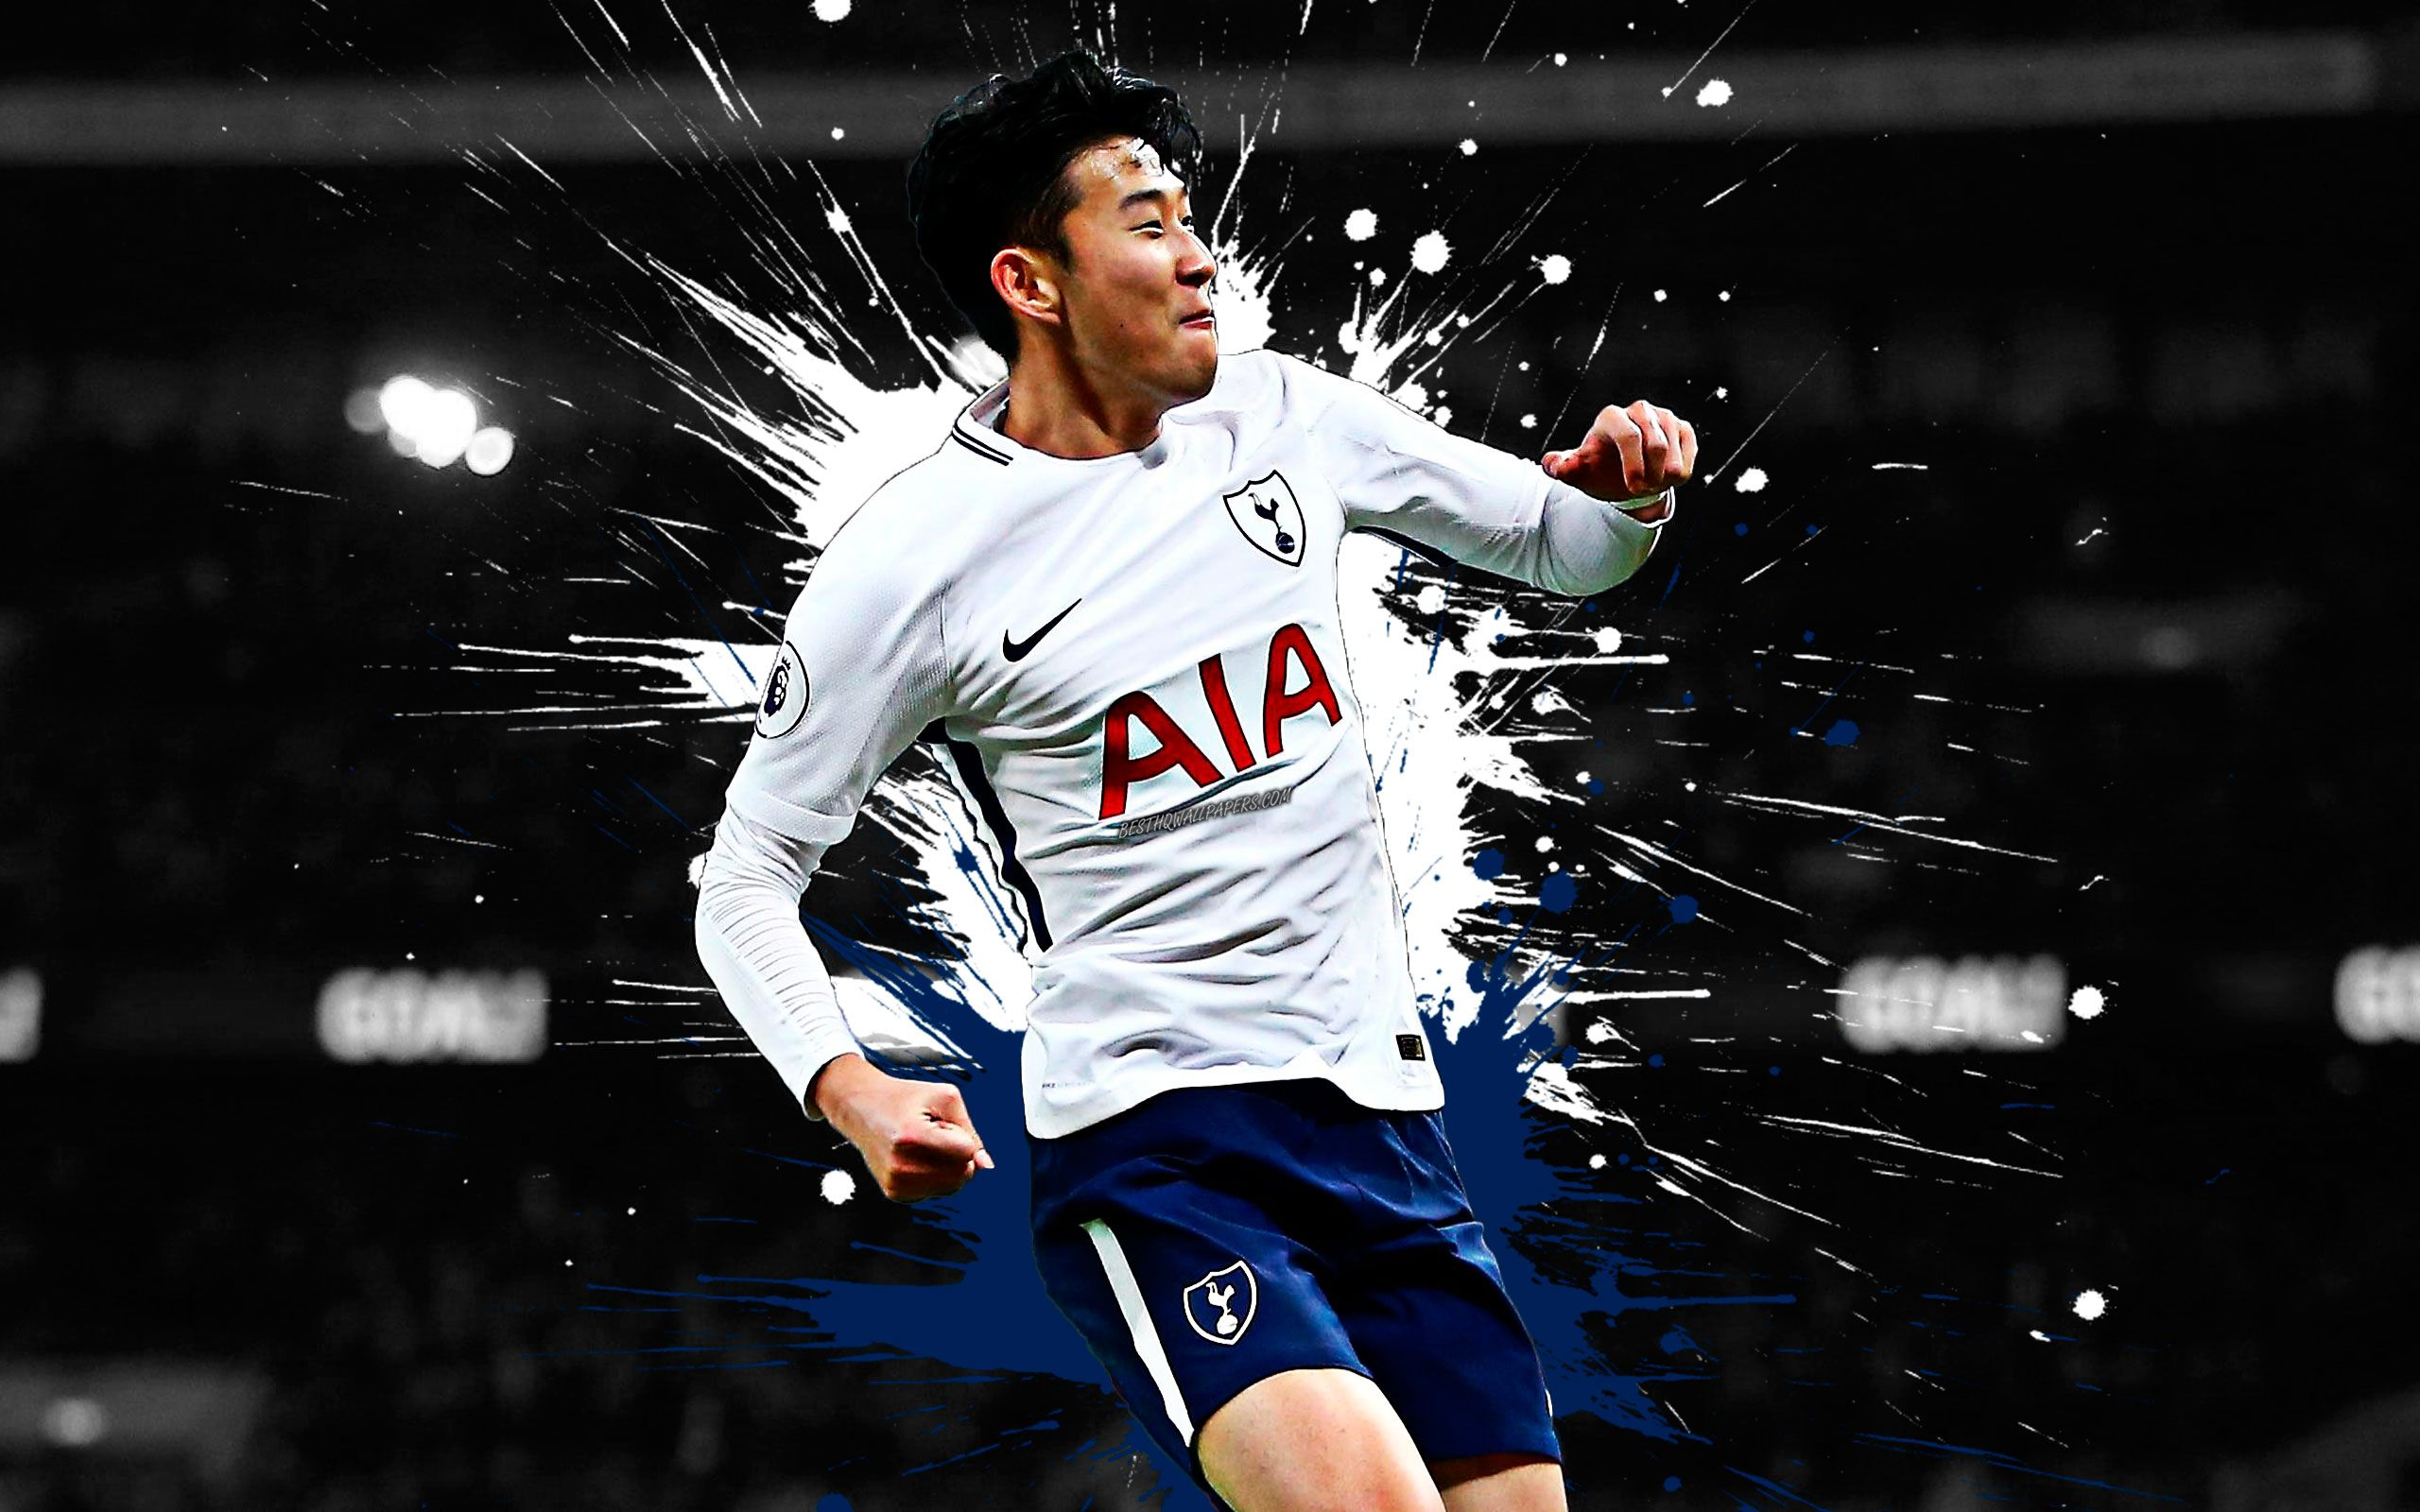 Son Heung Min Wallpapers Top Free Son Heung Min Backgrounds Wallpaperaccess